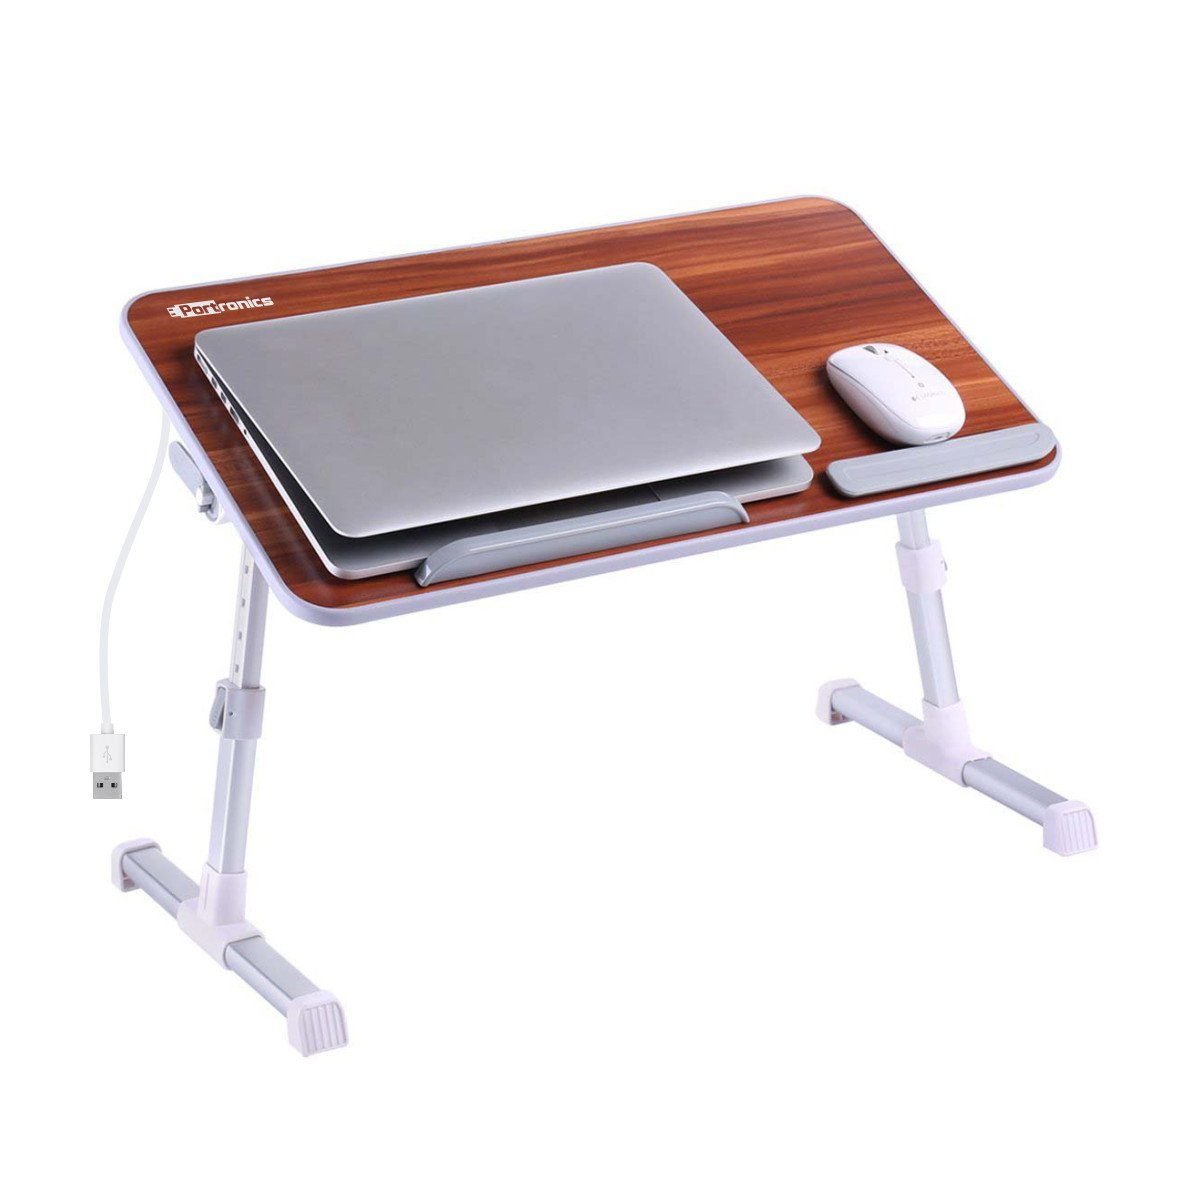 Portronics POR-895 Adjustable Laptop Table (Brown) product image